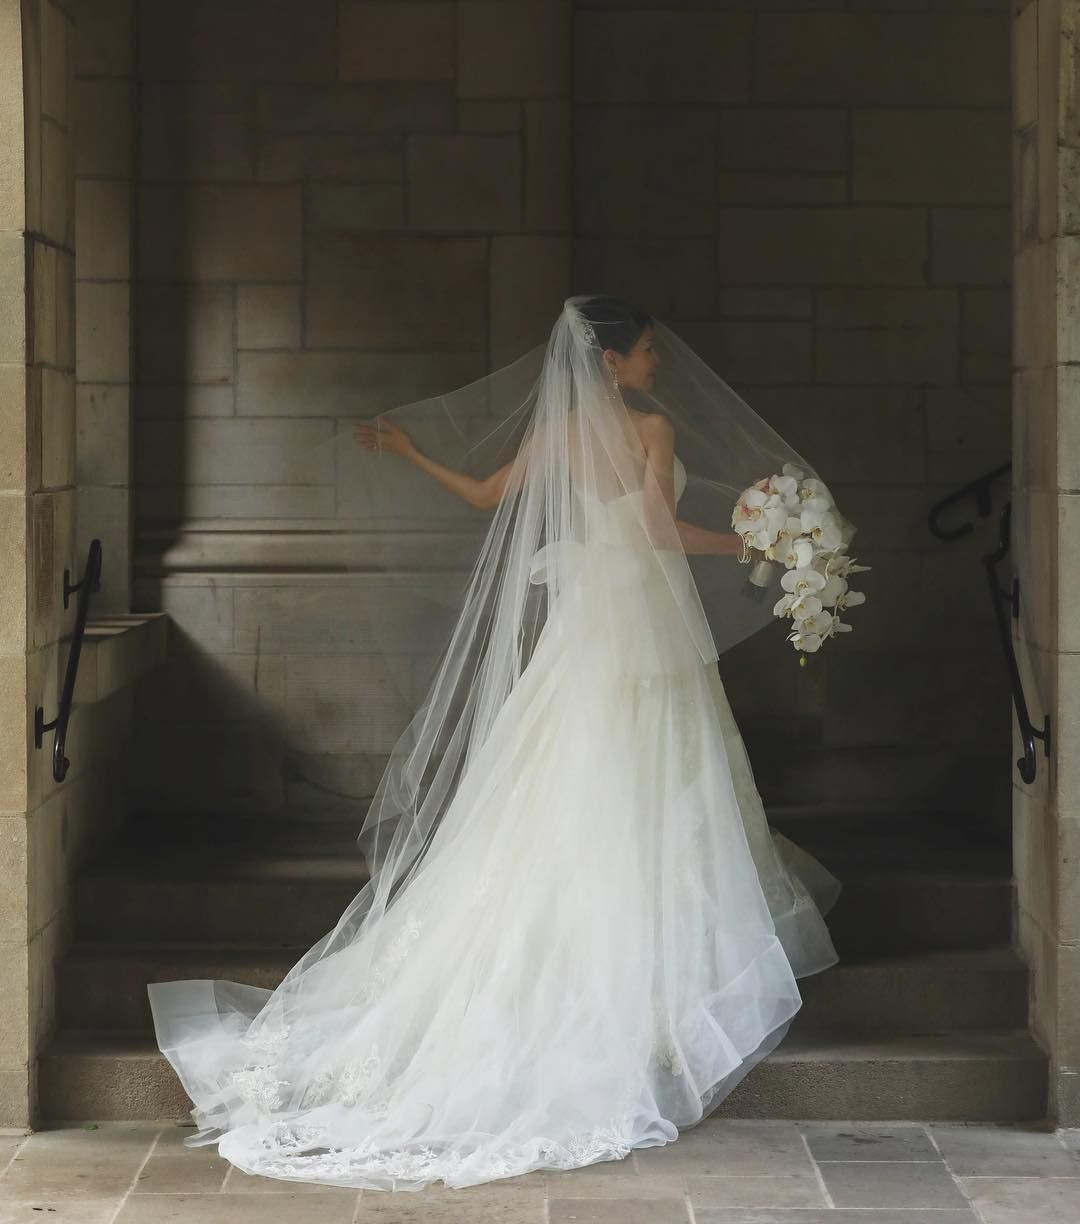 Loved capturing vanessa in her beautiful wedding gown photo by